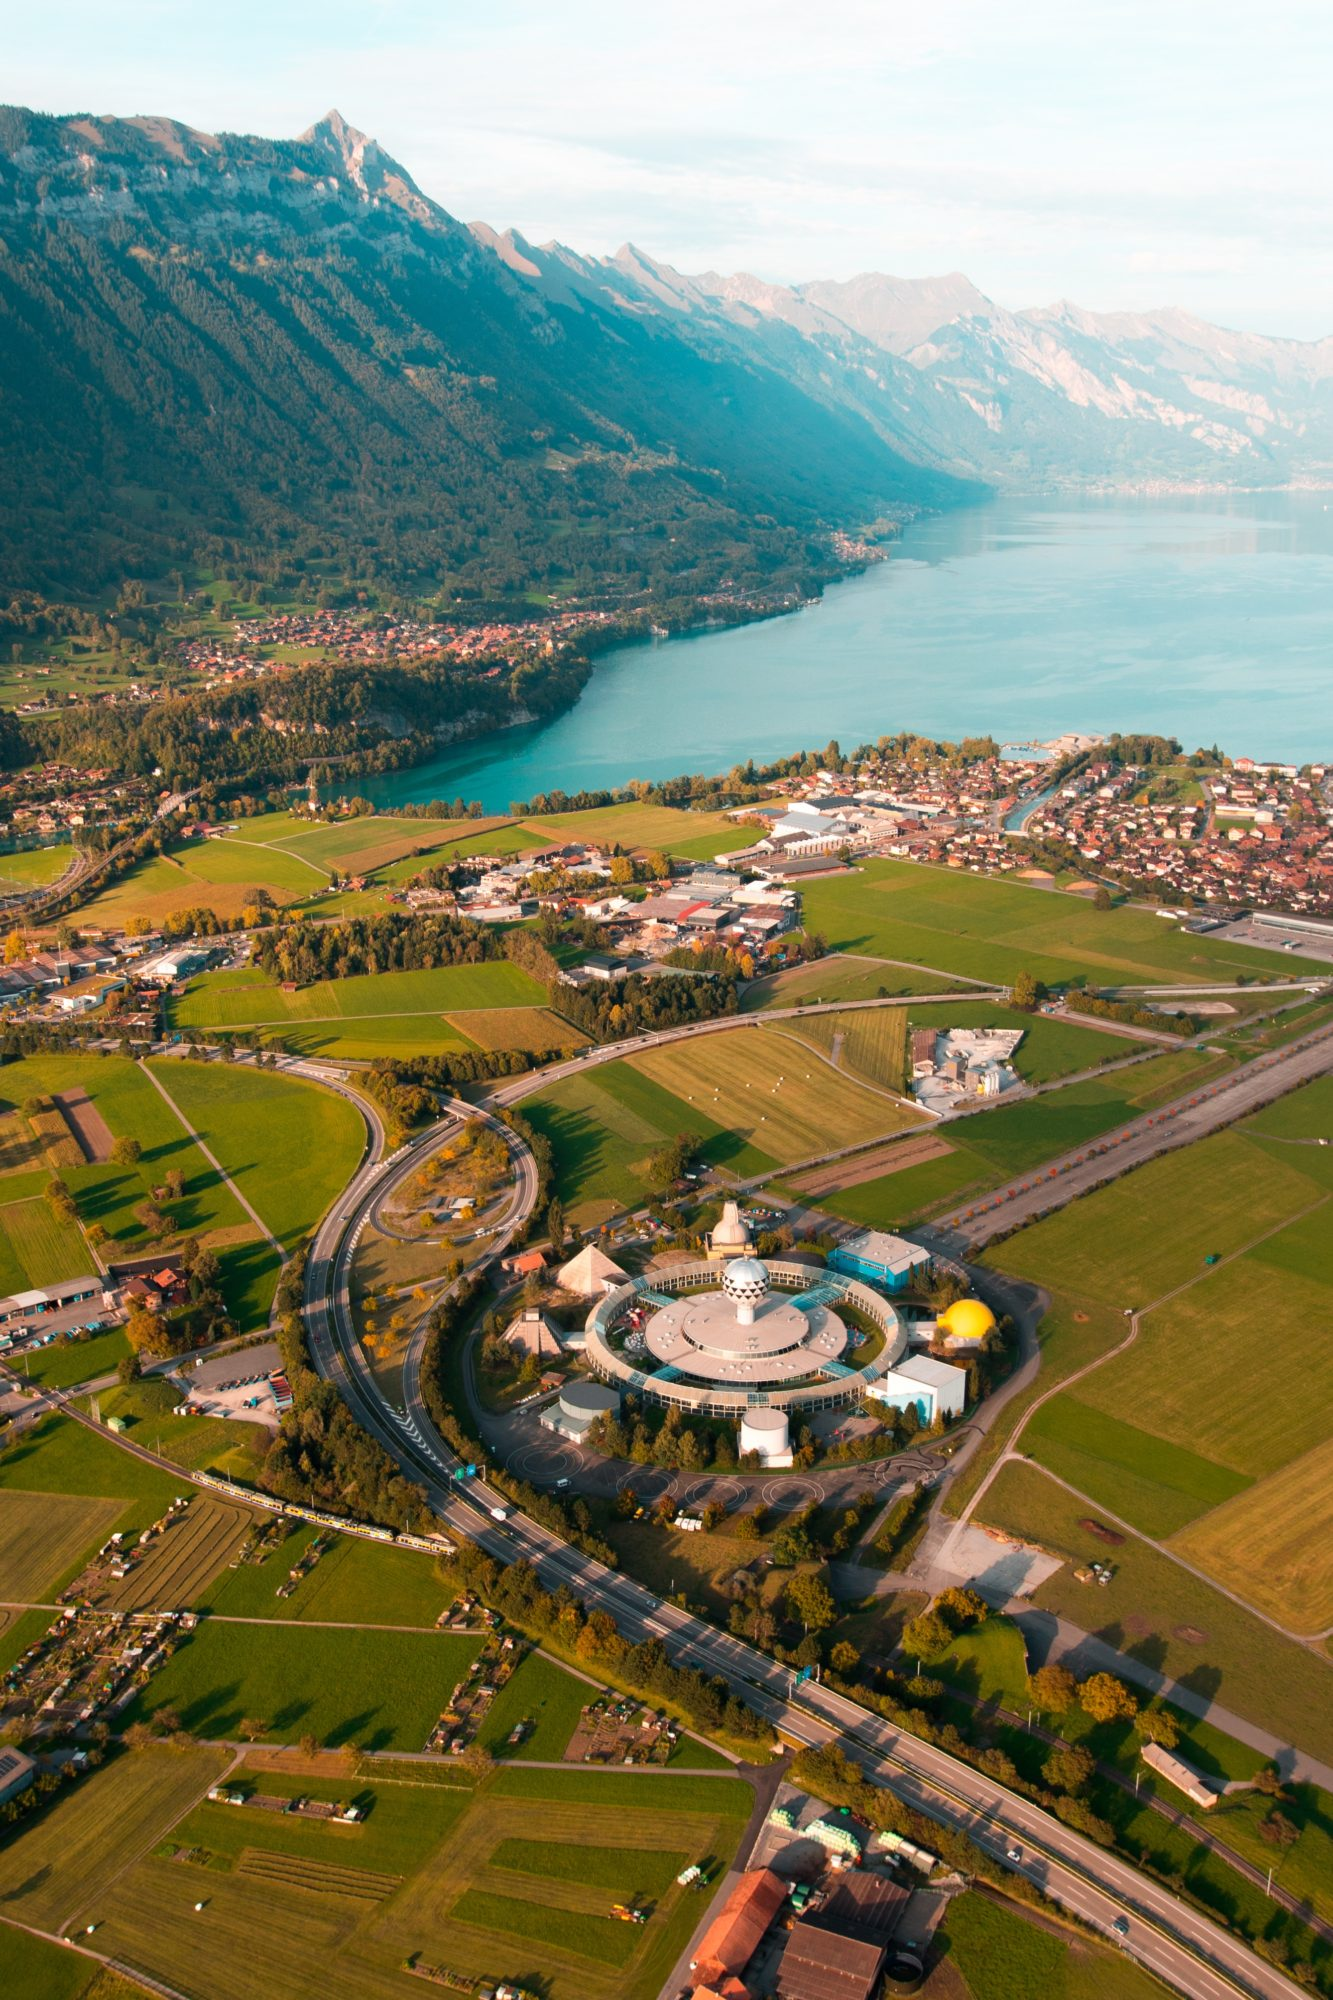 Interlaken, Best Mountain Towns In Europe